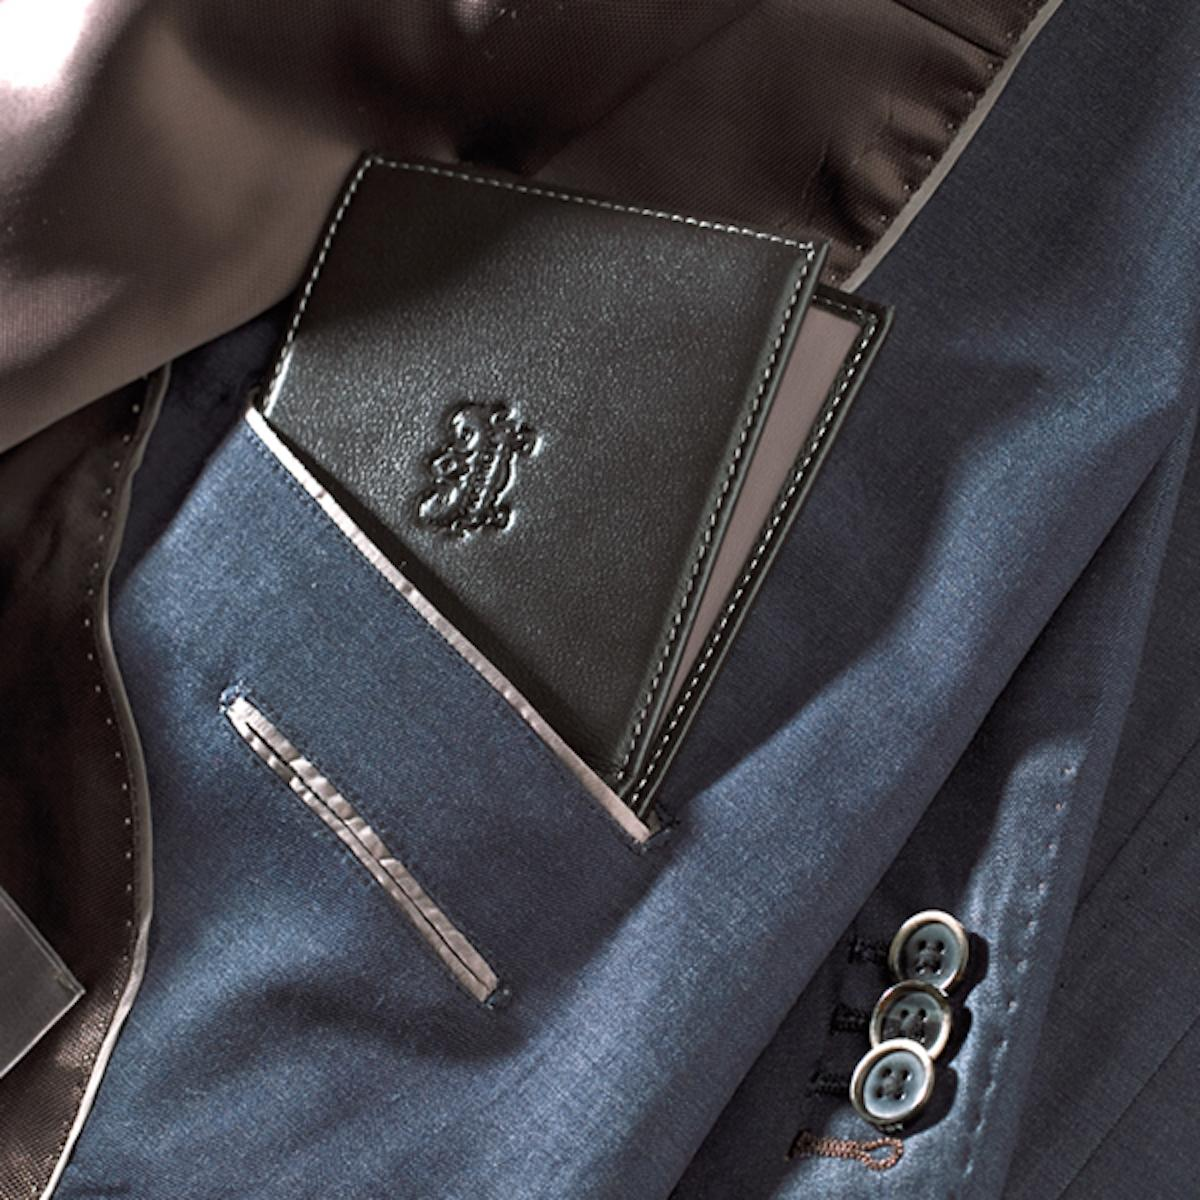 Good combination of dark colours and materials for blazer and wallet